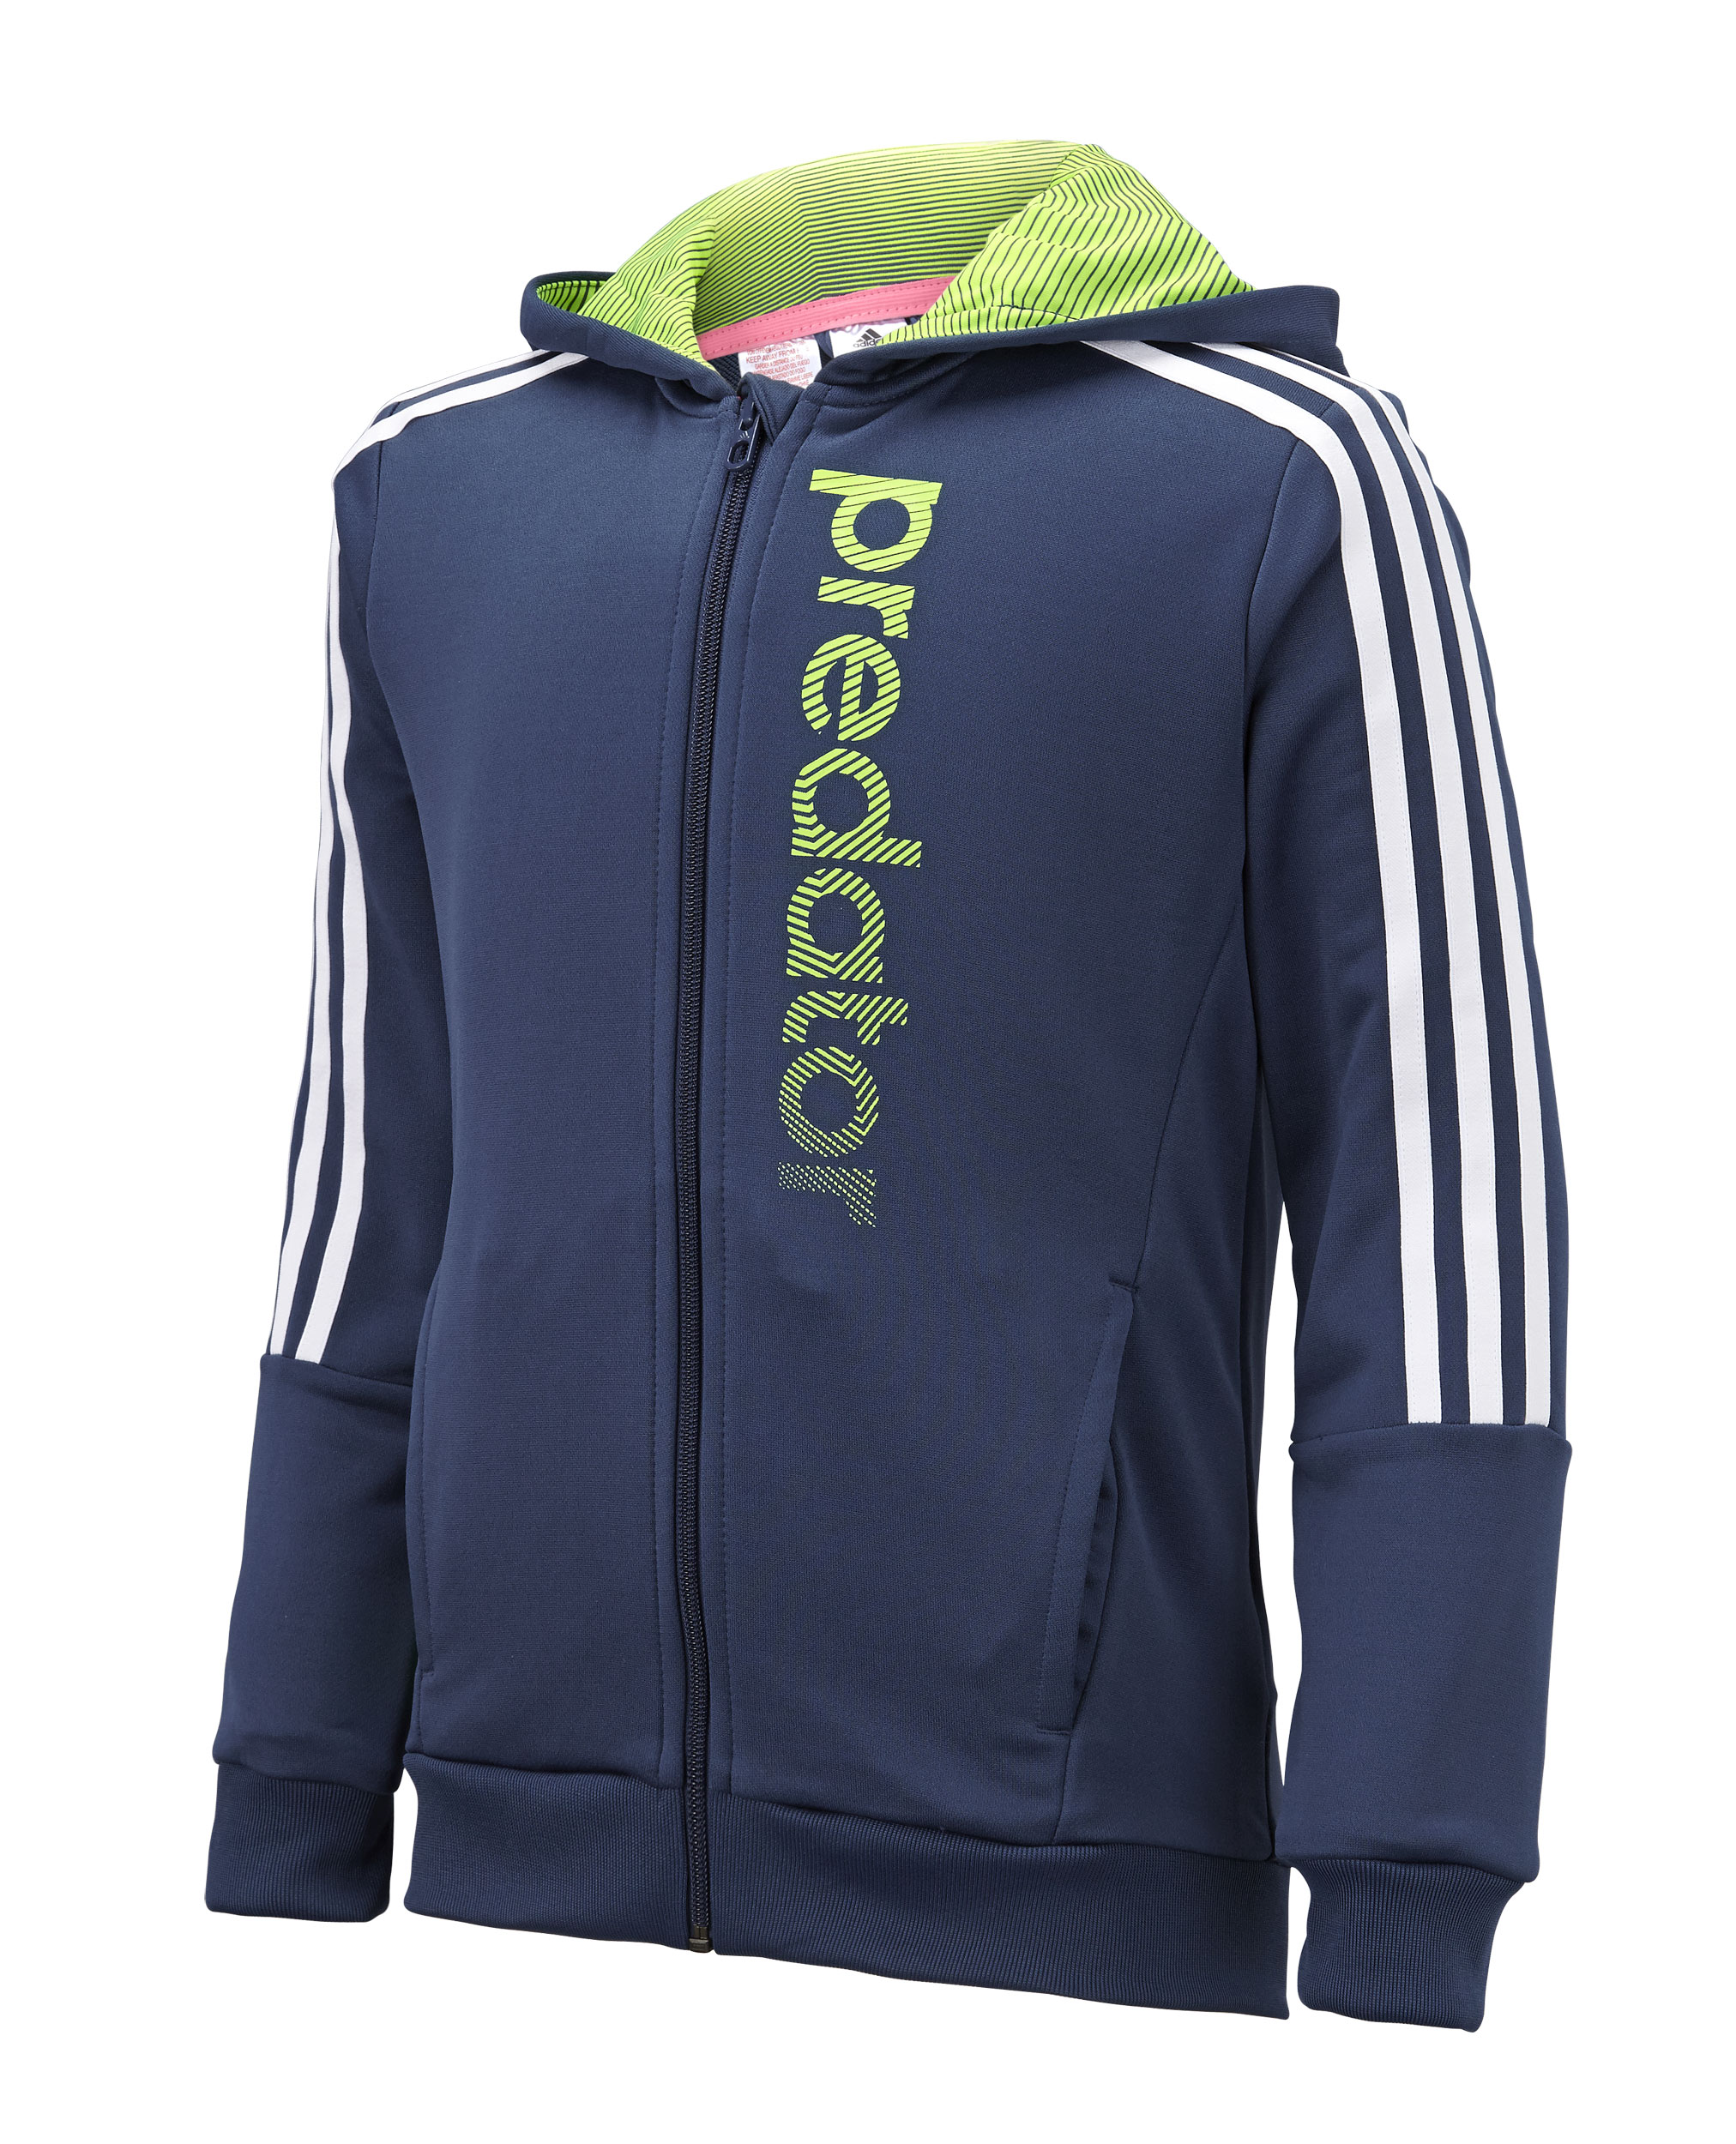 Adidas Junior Boys Predator Full Zip Knitted Hoody